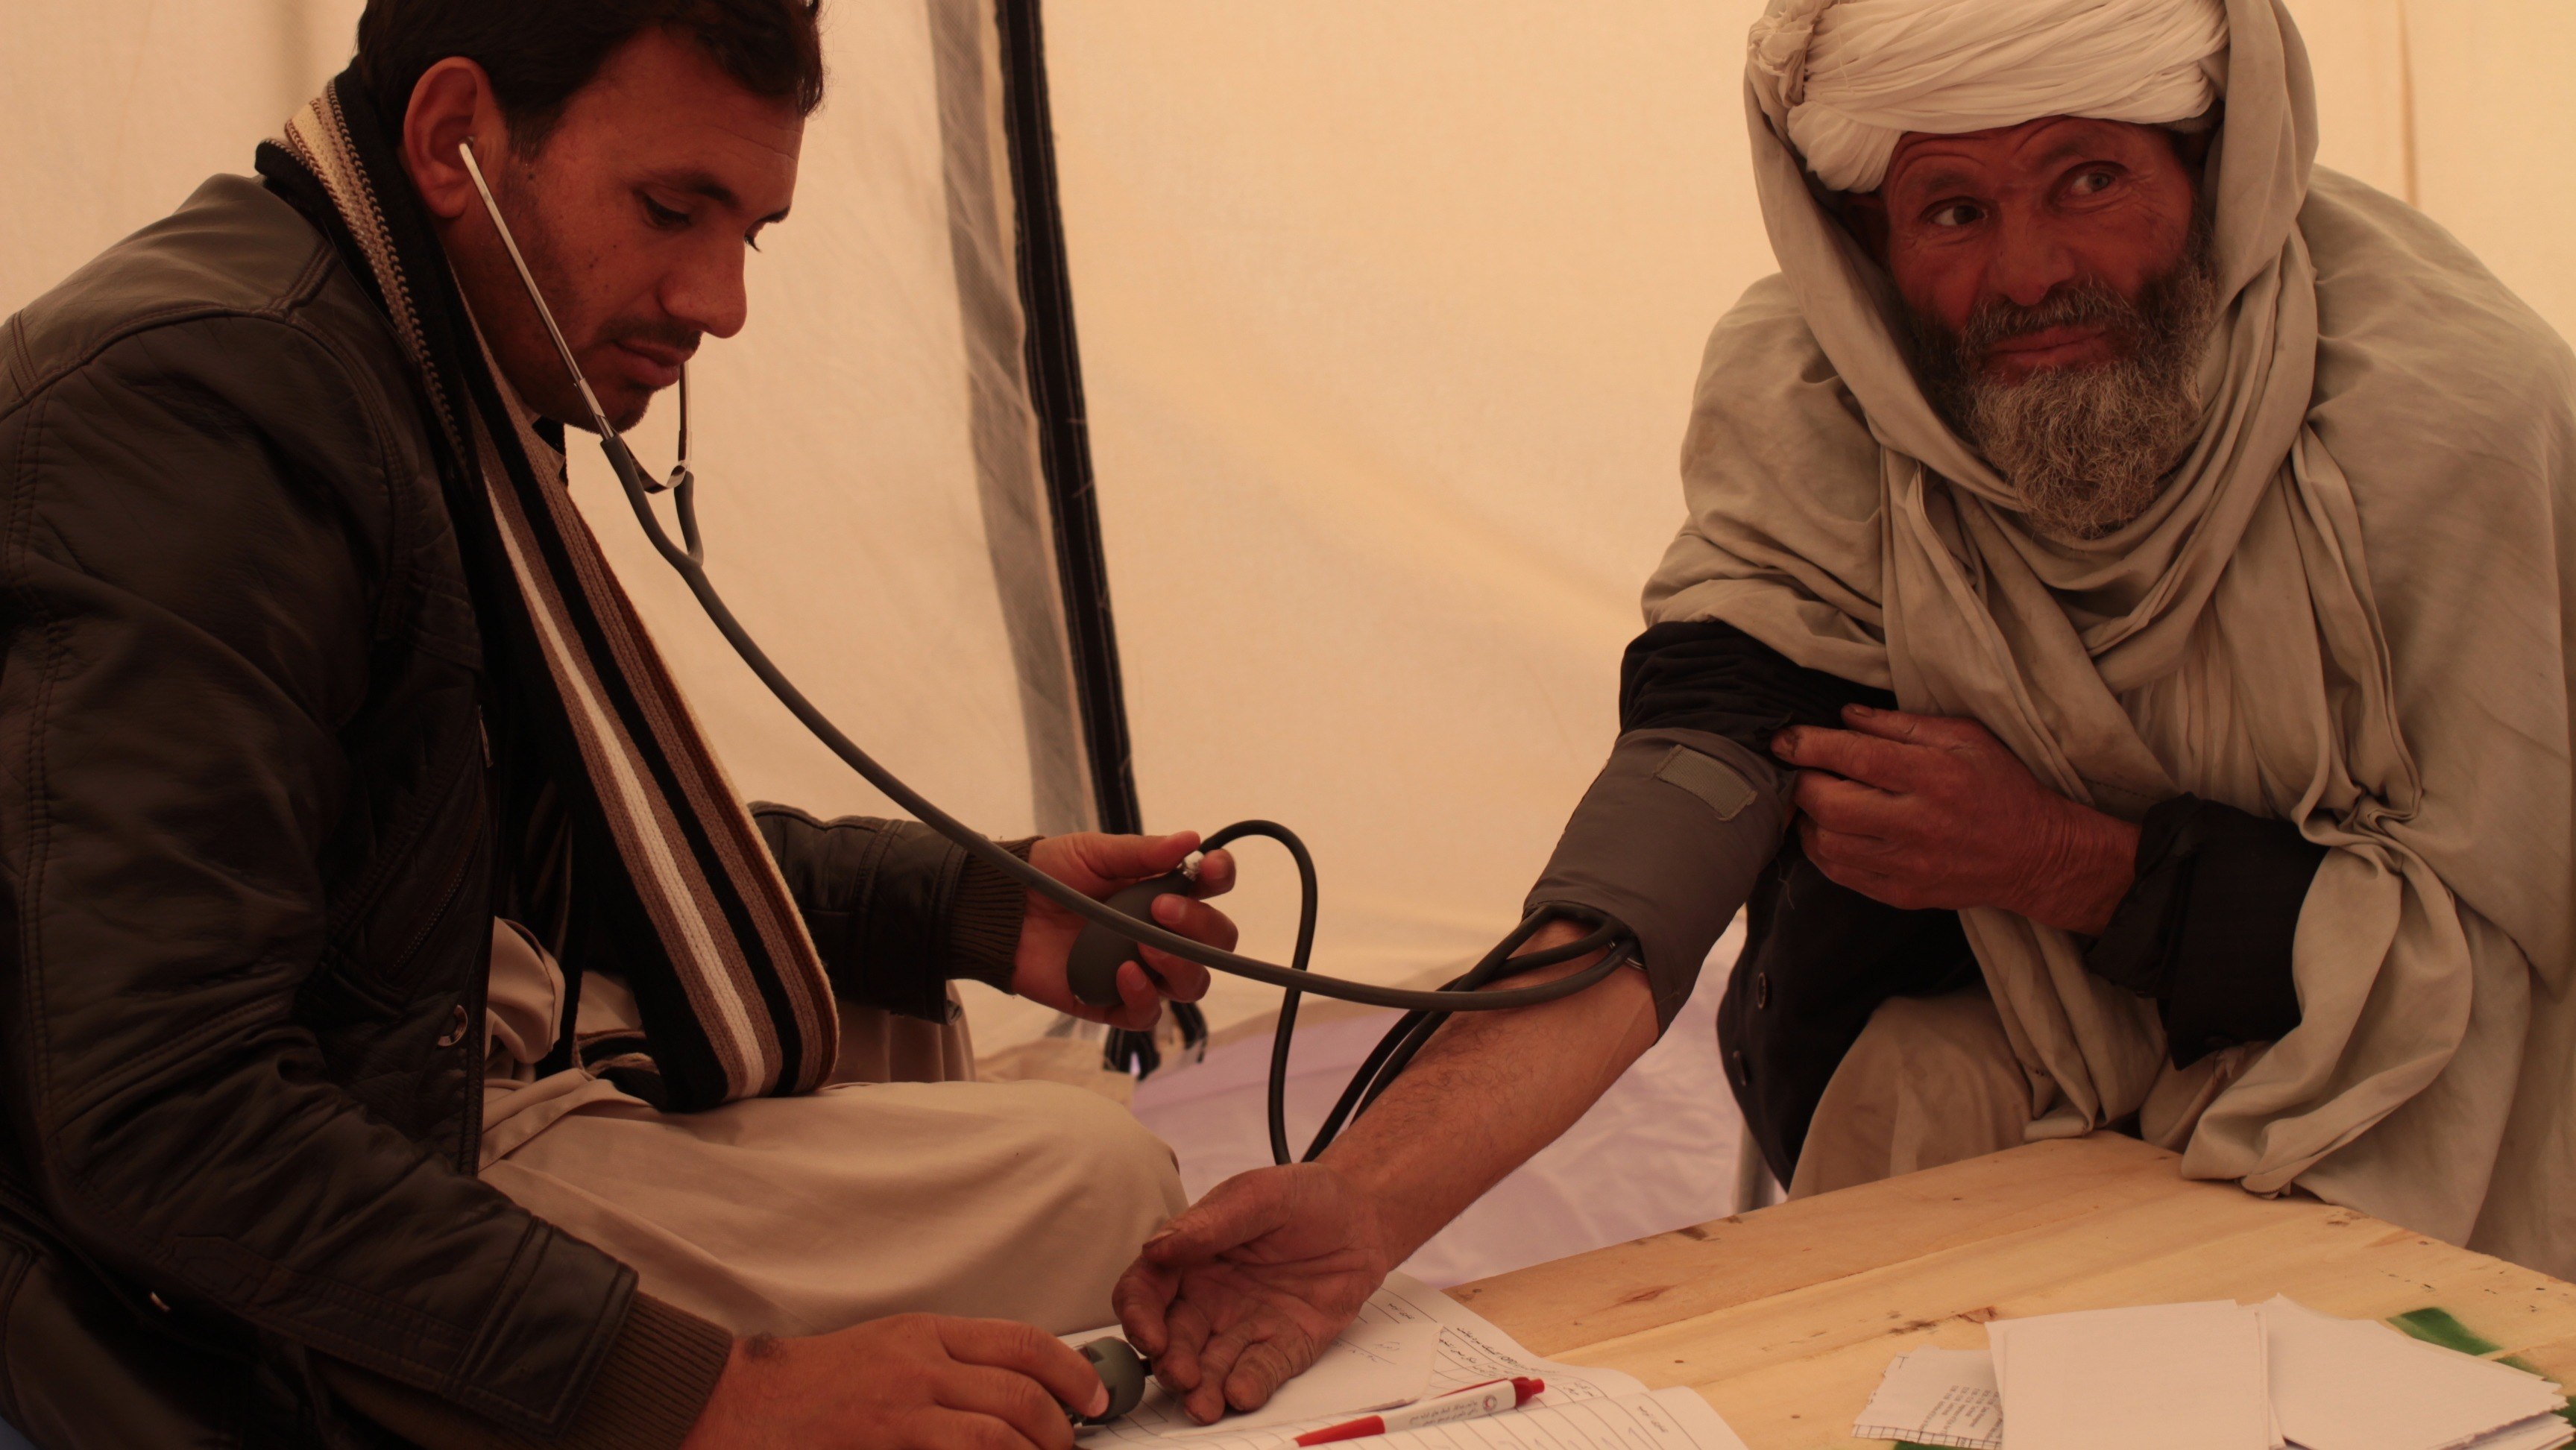 An internally displaced man gets a medical checkup at a mobile clinic set-up by the Afghan Red Crescent close to Herat (Jan 2014).